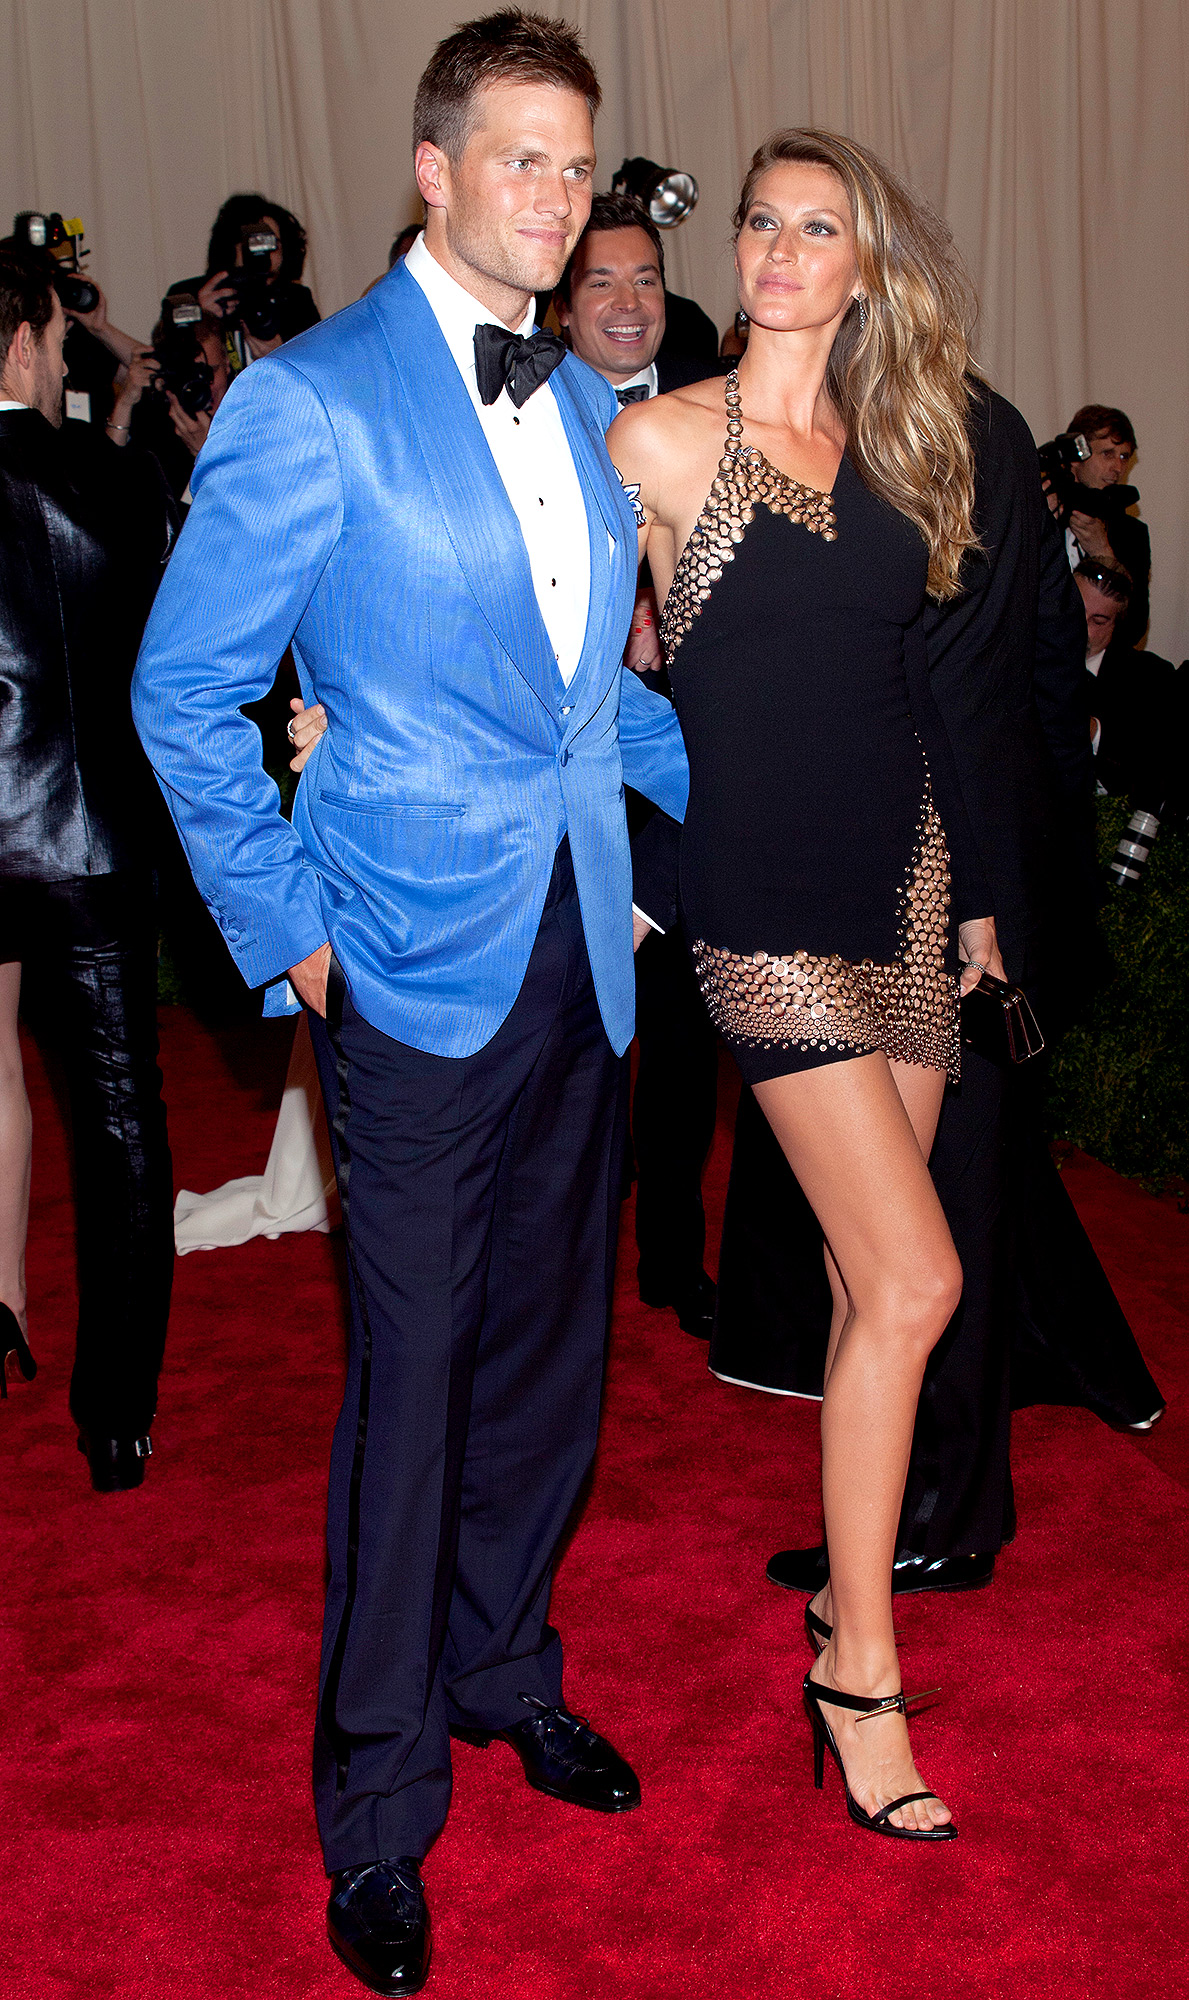 Tom Brady and Gisele Bundchen attend the Costume Institute Gala for the 'PUNK: Chaos to Couture' exhibition at the Metropolitan Museum of Art in New York City. �� LAN (Photo by Lars Niki/Corbis via Getty Images)